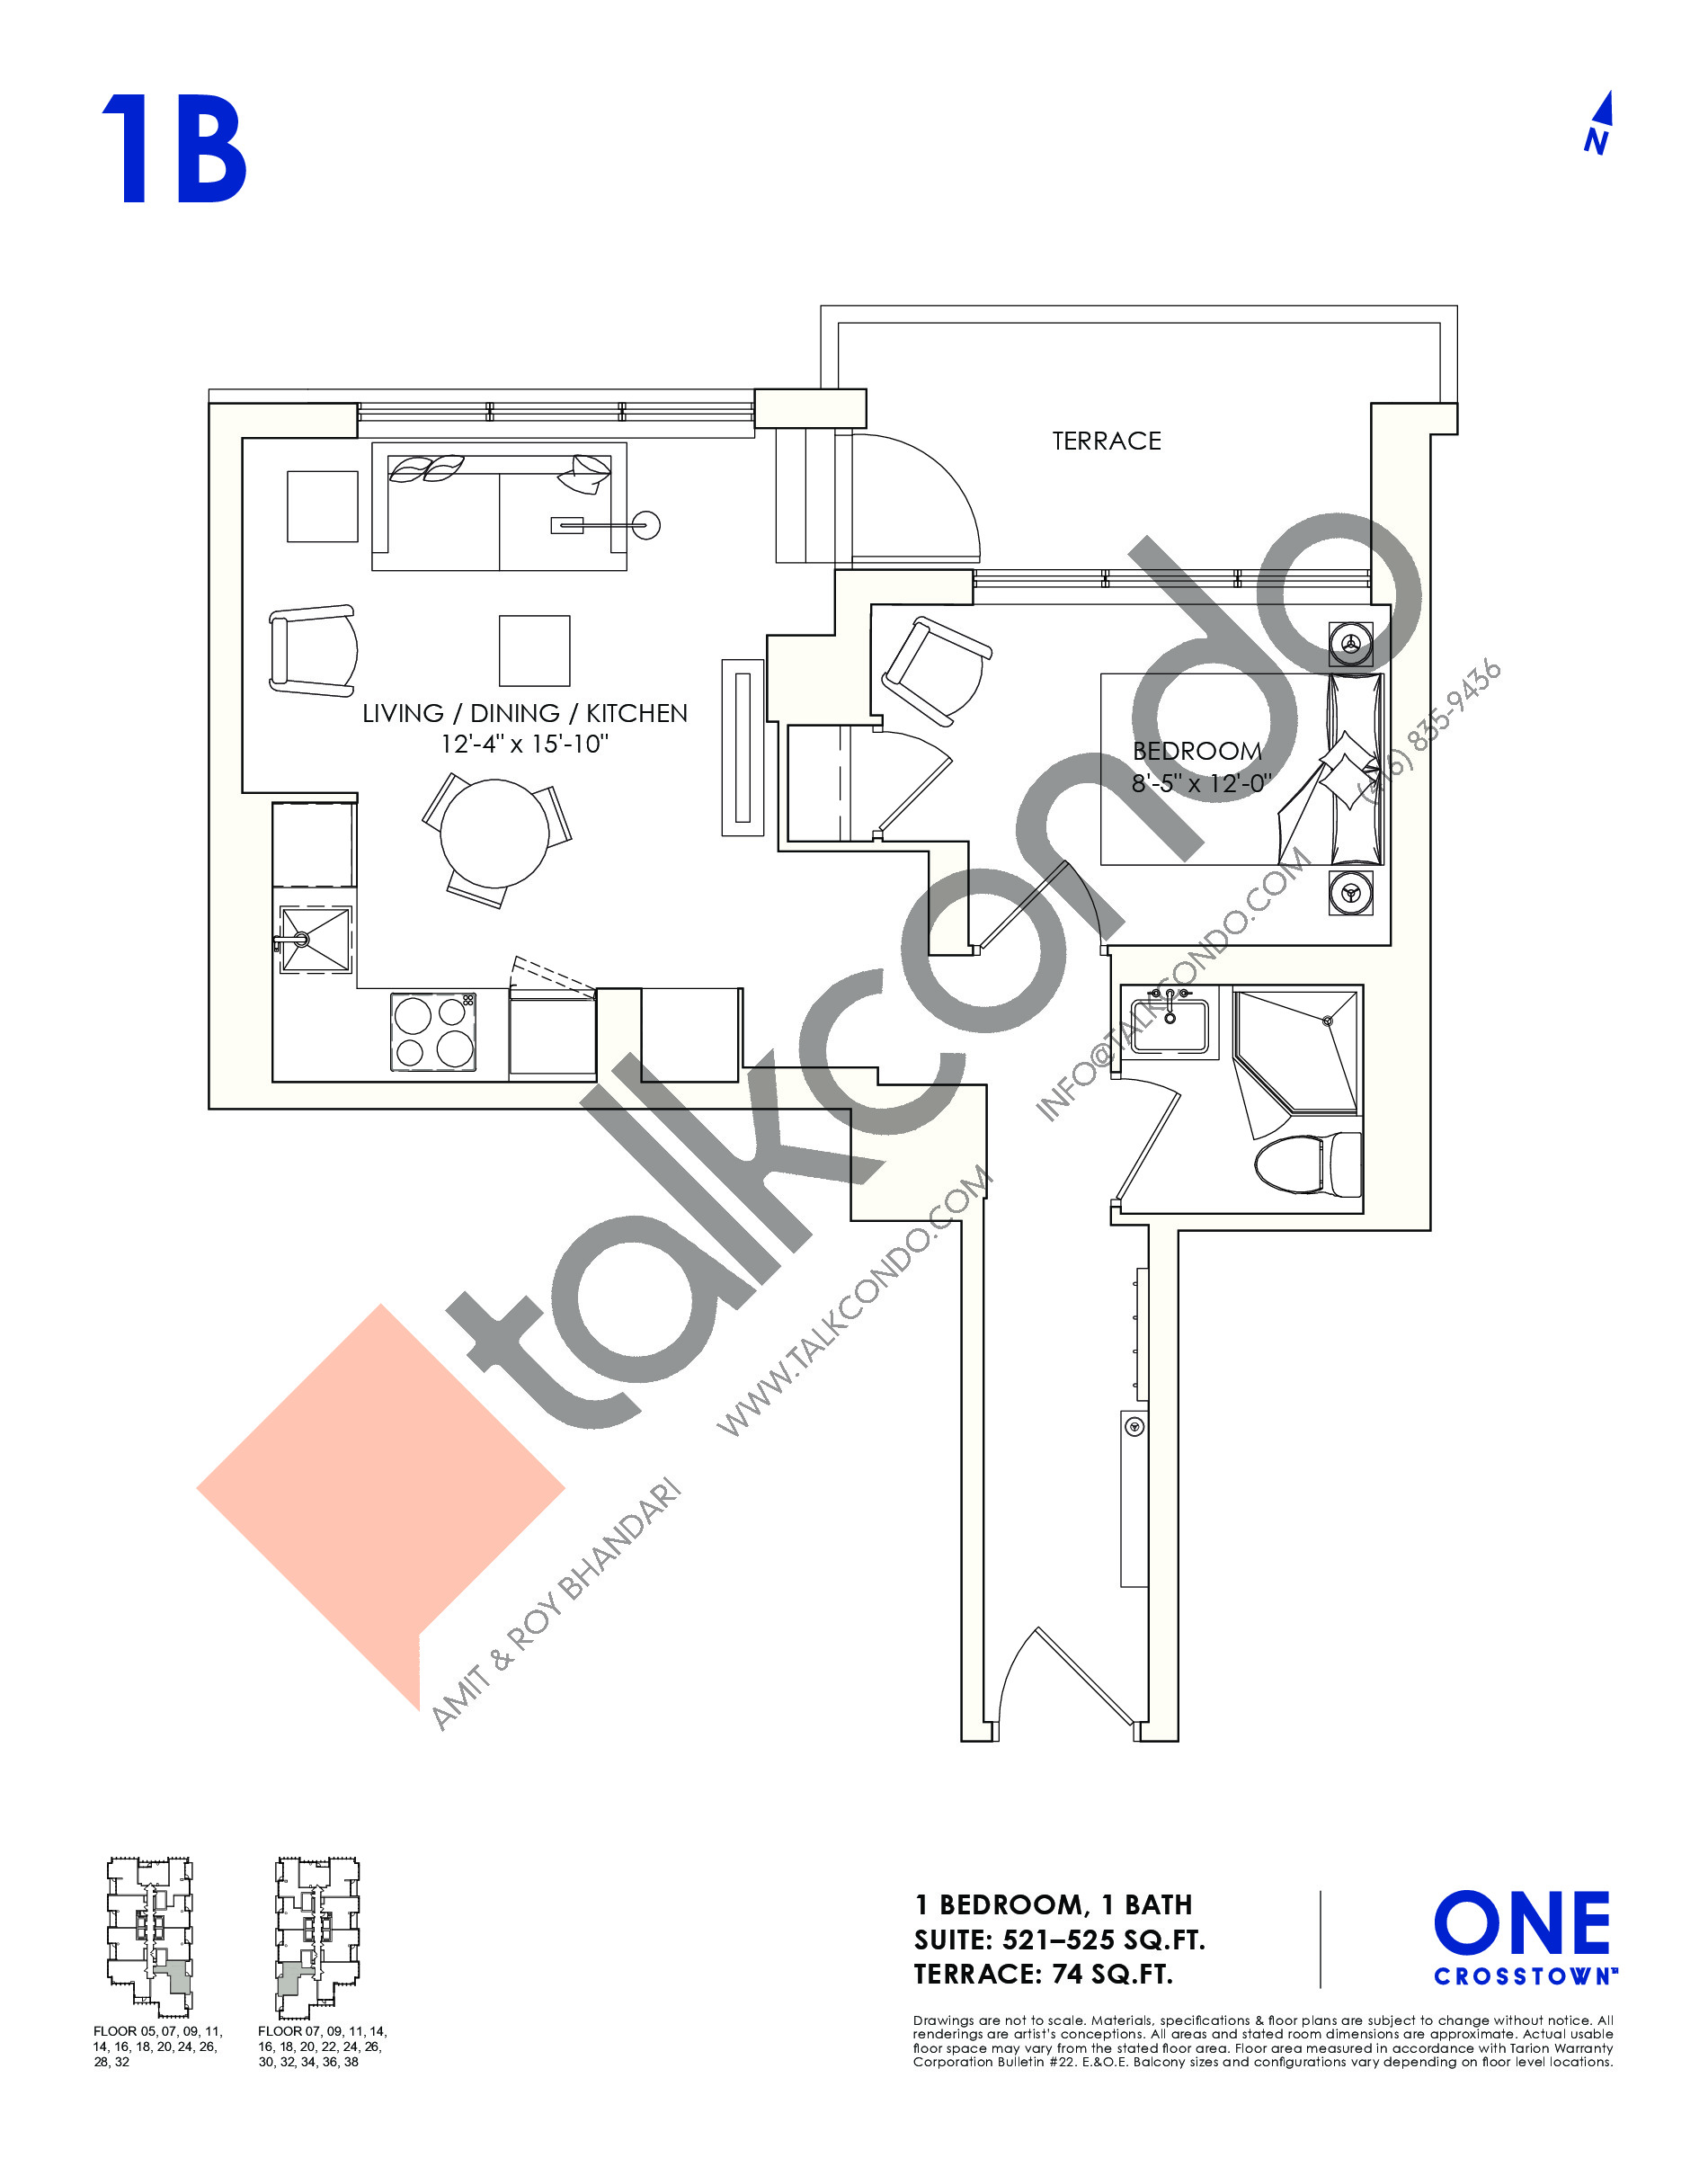 1B Floor Plan at One Crosstown Condos - 525 sq.ft